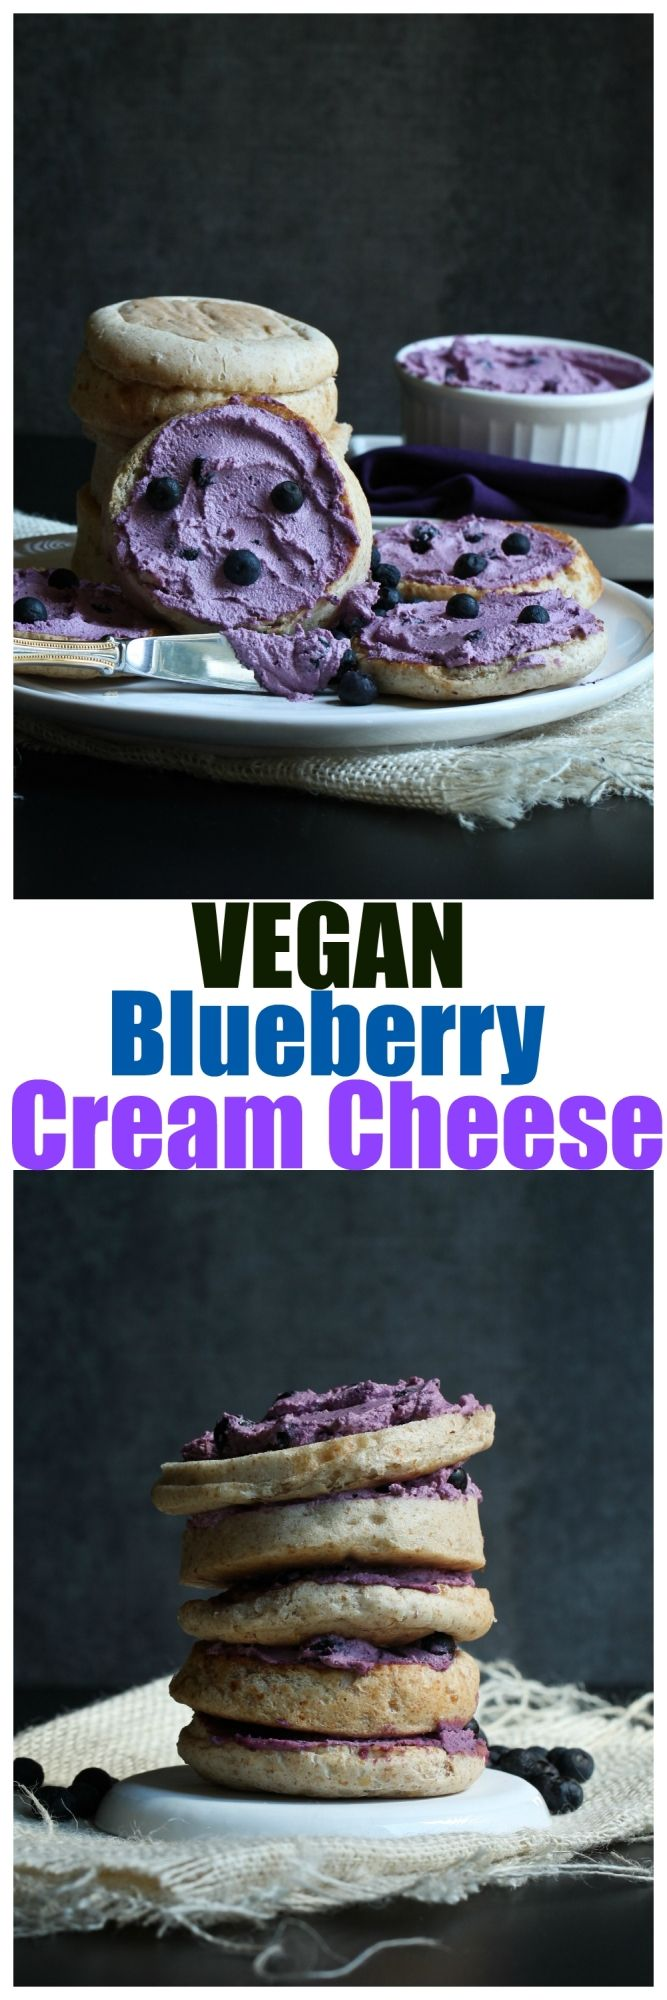 Vegan Blueberry Cream Cheese. Homemade, dairy-free cashew cream cheese. No oil and made in a food processor with fresh blueberries. Better than storebought.